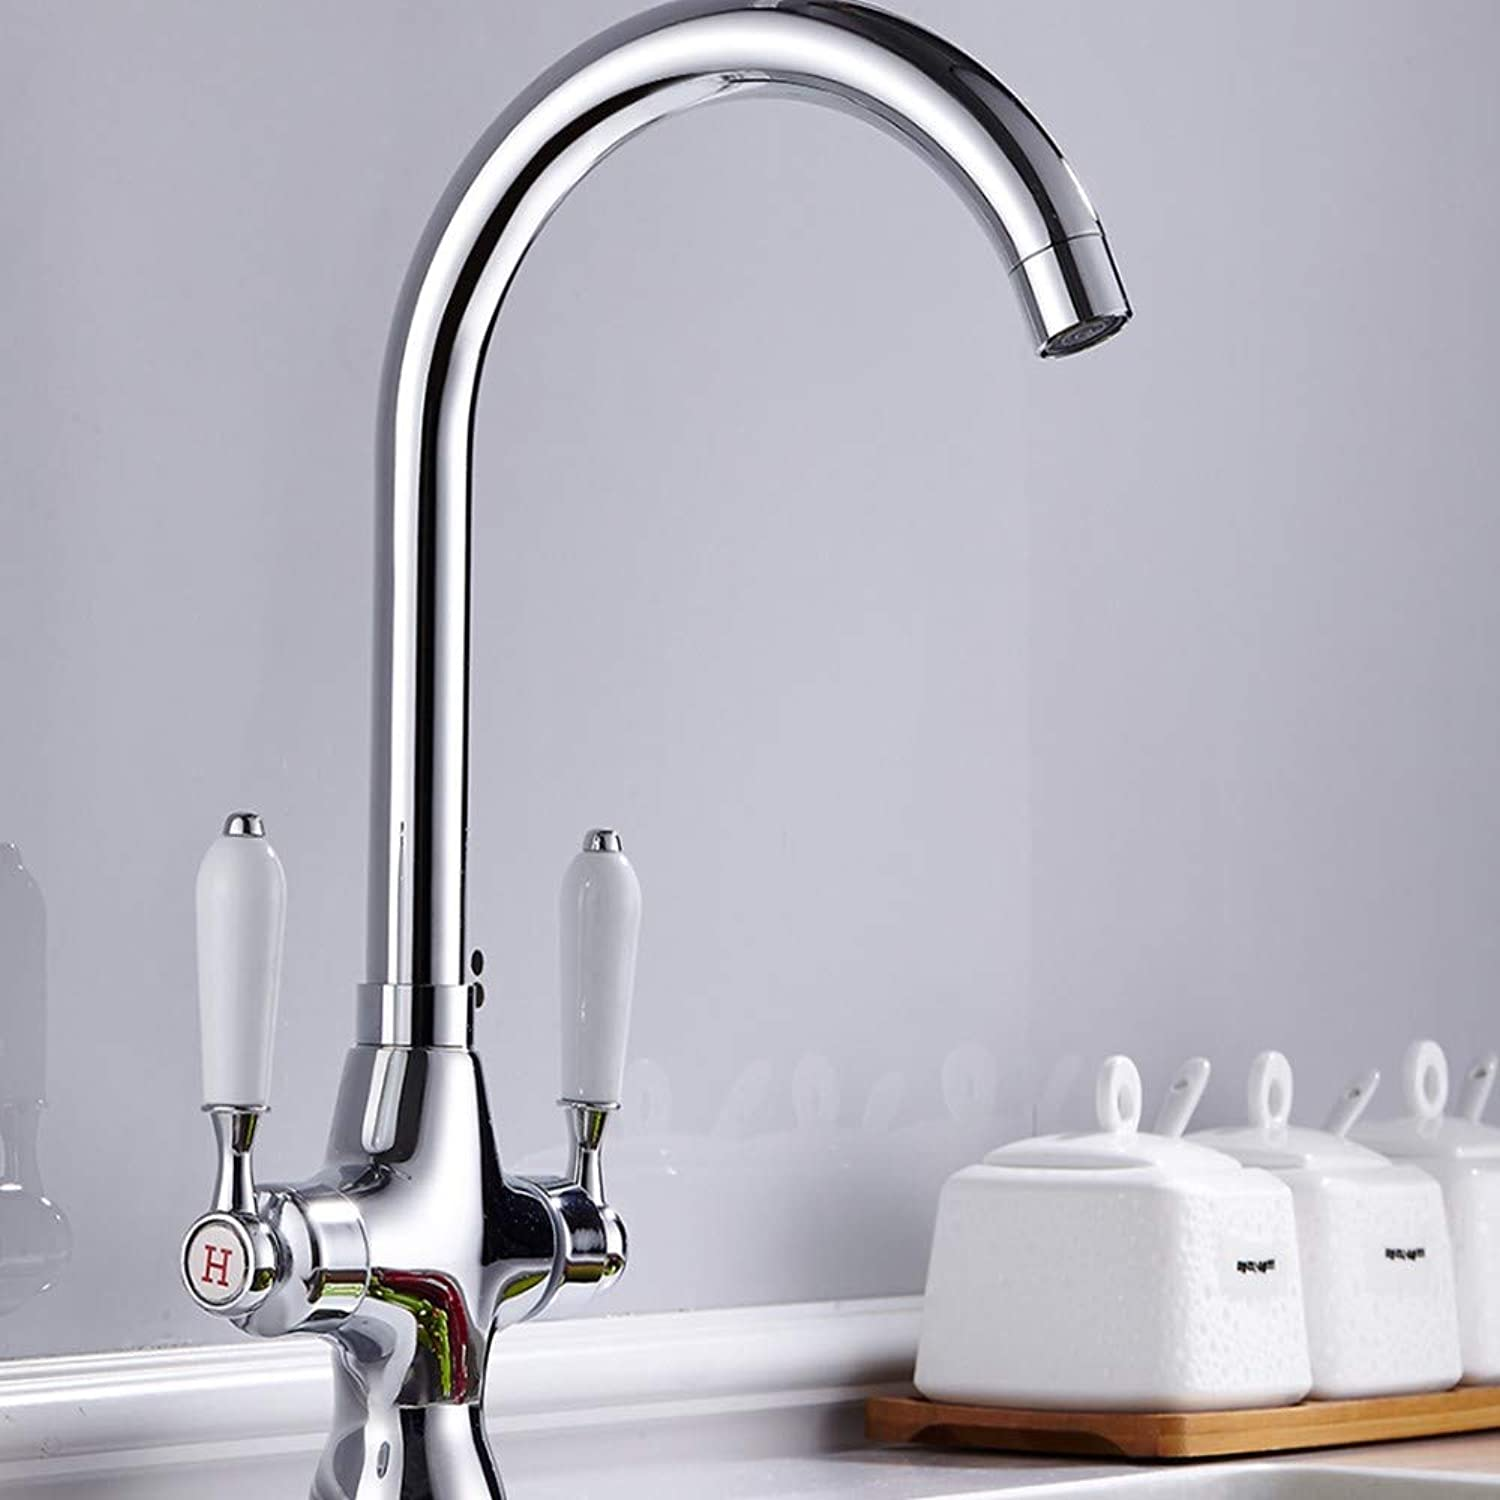 KUNHAN Kitchen Sink Faucet Tap Brass Kitchen Faucet Chrome Kitchen Kitchen Sink Faucet Tap Hot And Cold Water Faucet Water Aerator